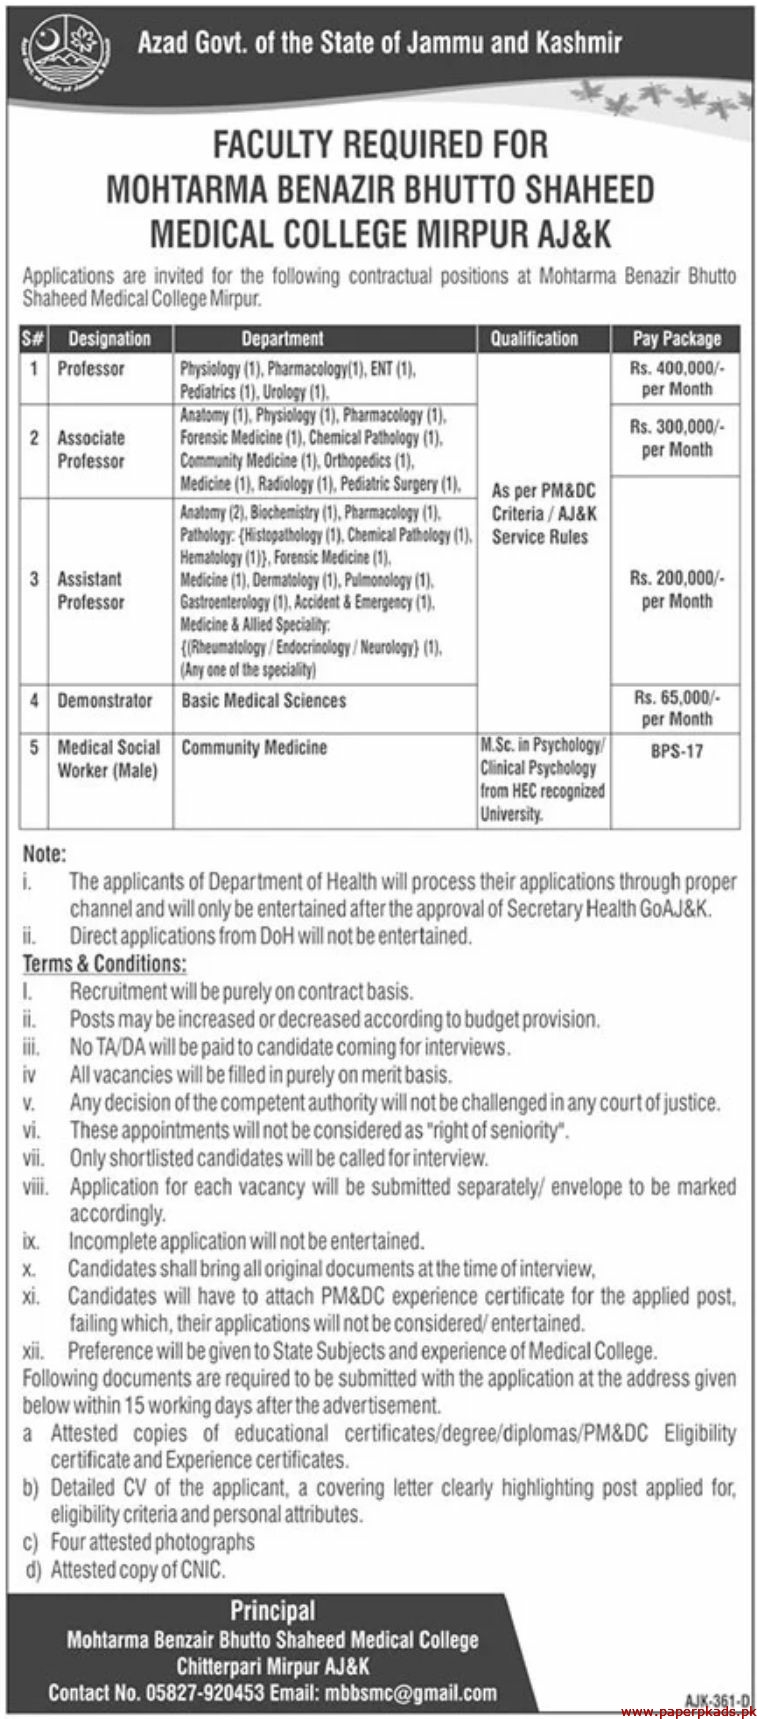 Mohtarma Benazir Bhutto Shaheed Medical College Mirpur Jobs 2020 Latest